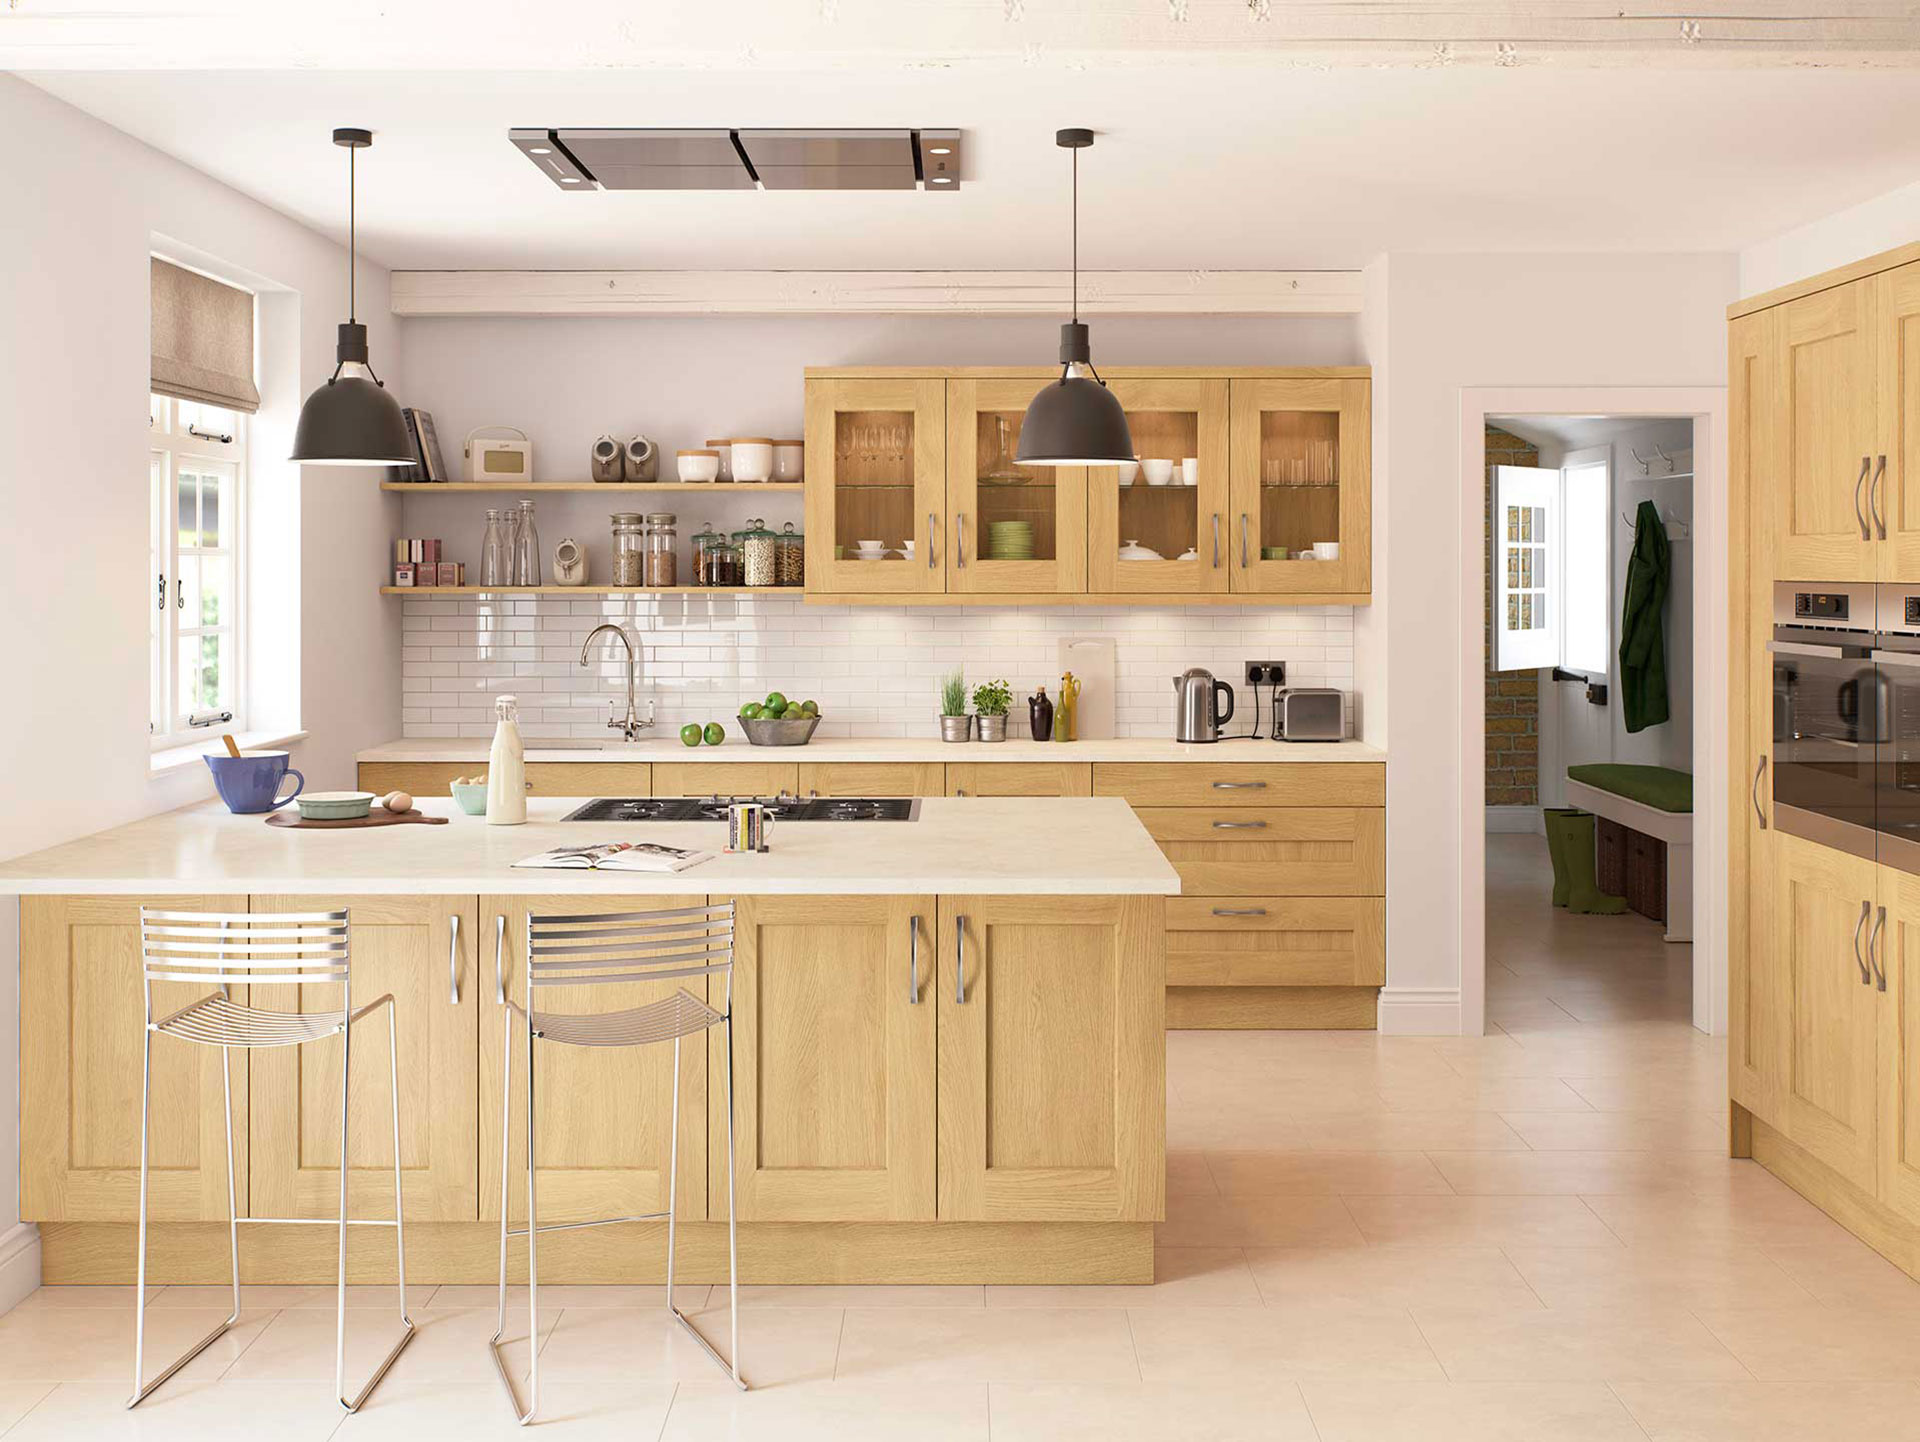 Example of Whitefield kitchen project